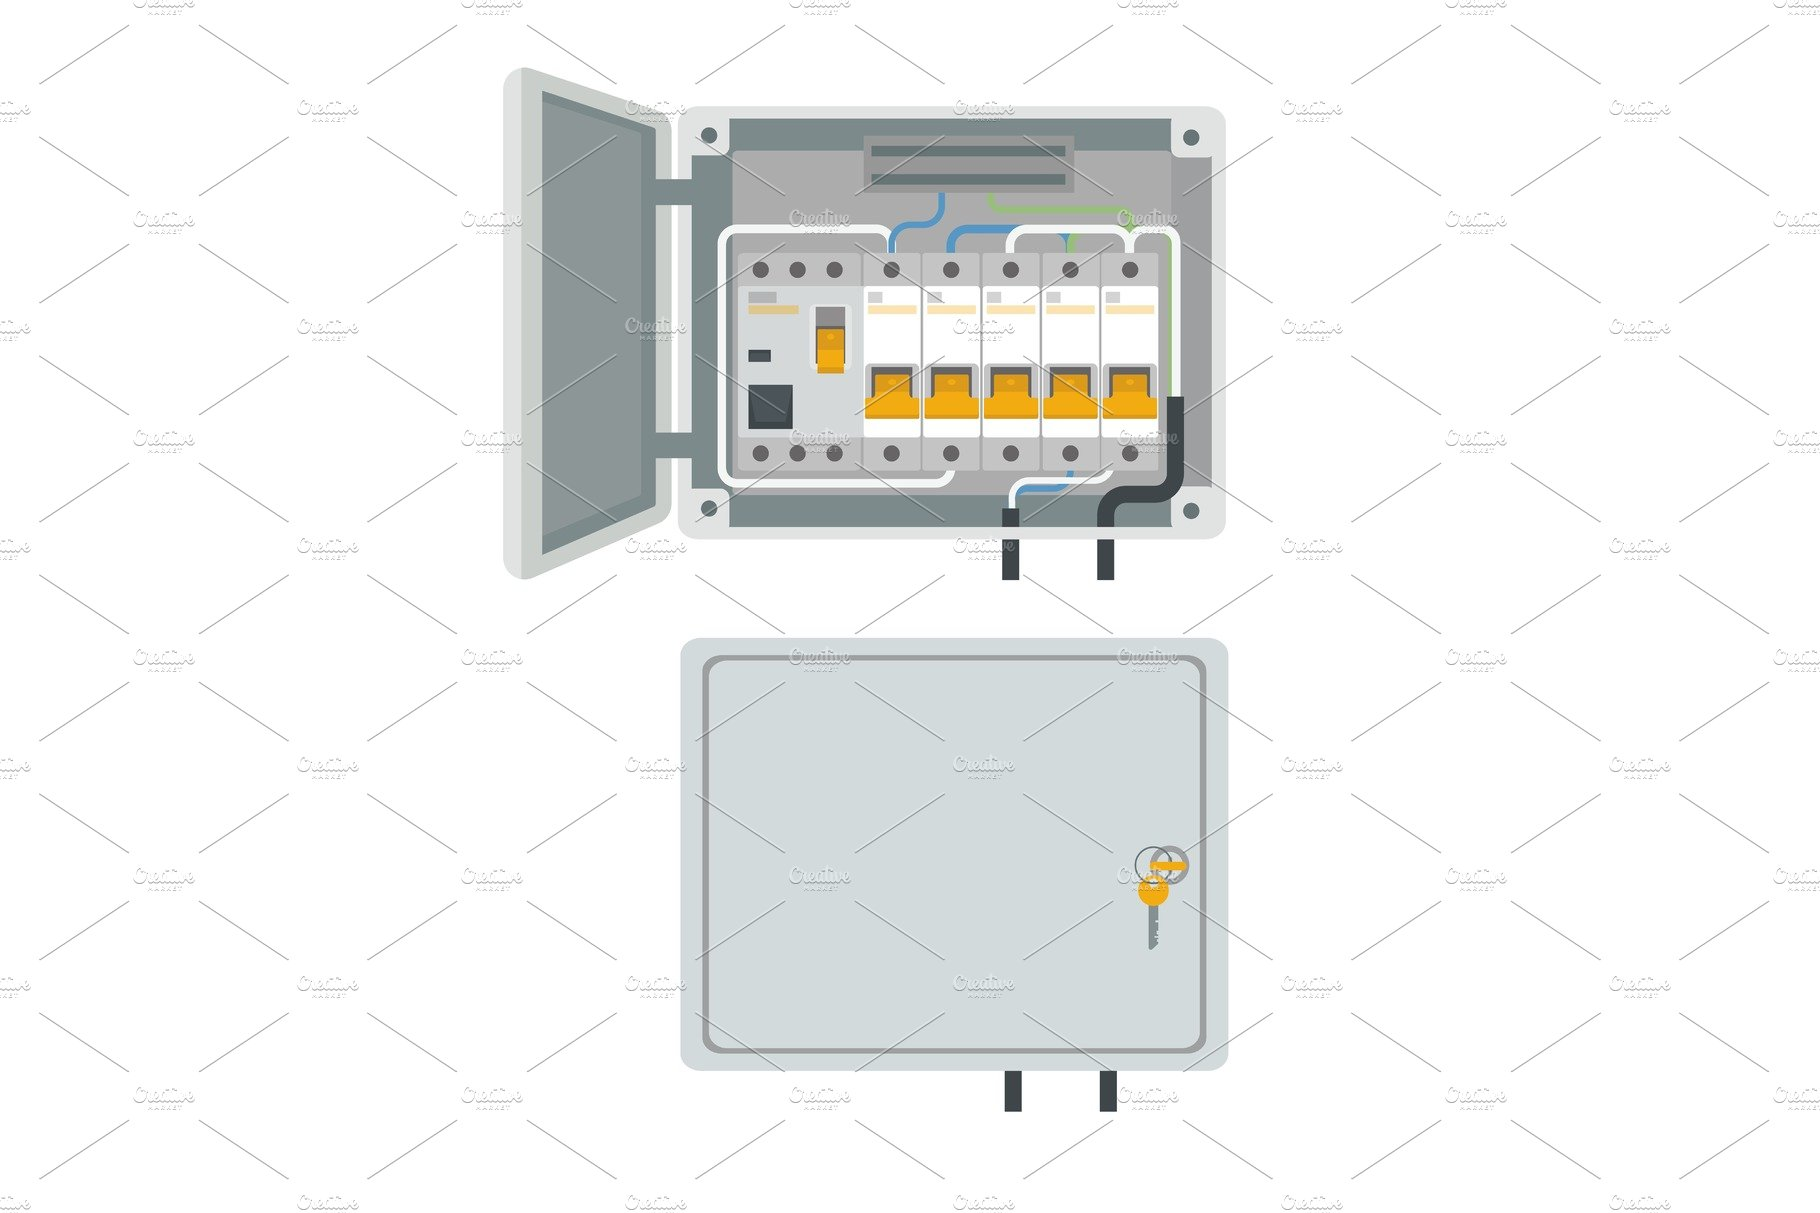 fuse box indesign template - wiring diagram dress-network-b -  dress-network-b.piuconzero.it  piuconzero.it